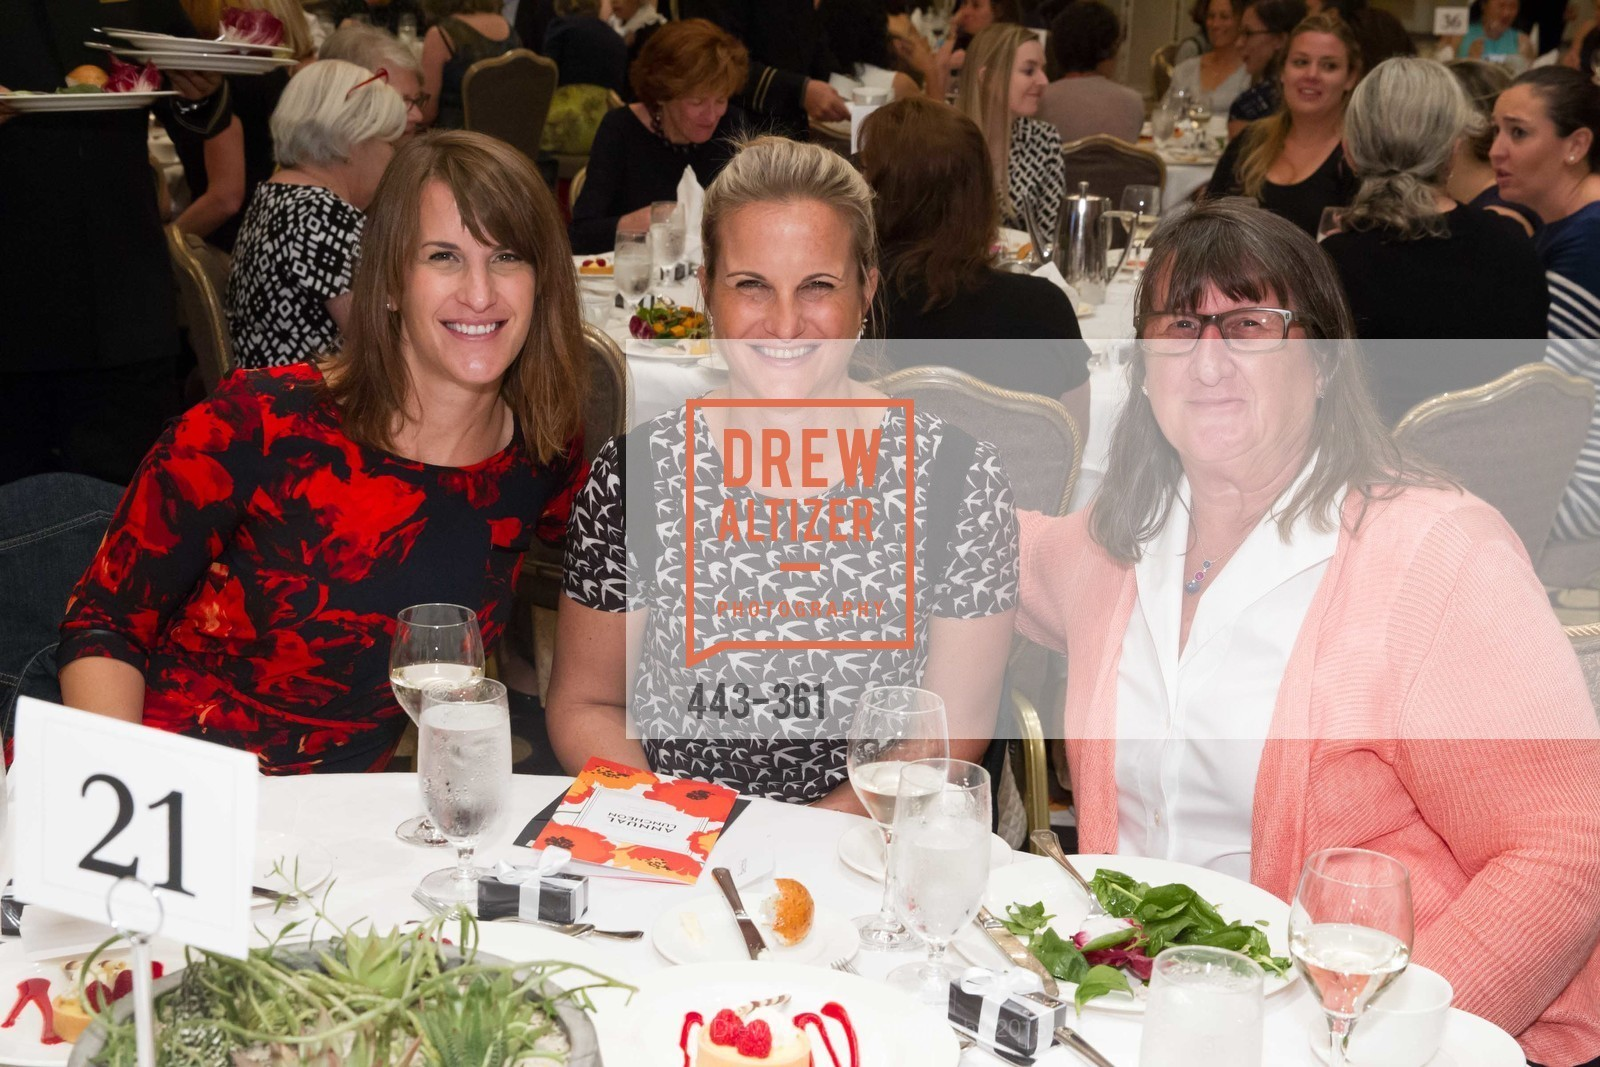 Megan Bechtol, Sharon Bechtol, Homeless Prenatal Programs Annual Luncheon, Fairmont Hotel, October 9th, 2015,Drew Altizer, Drew Altizer Photography, full-service agency, private events, San Francisco photographer, photographer california